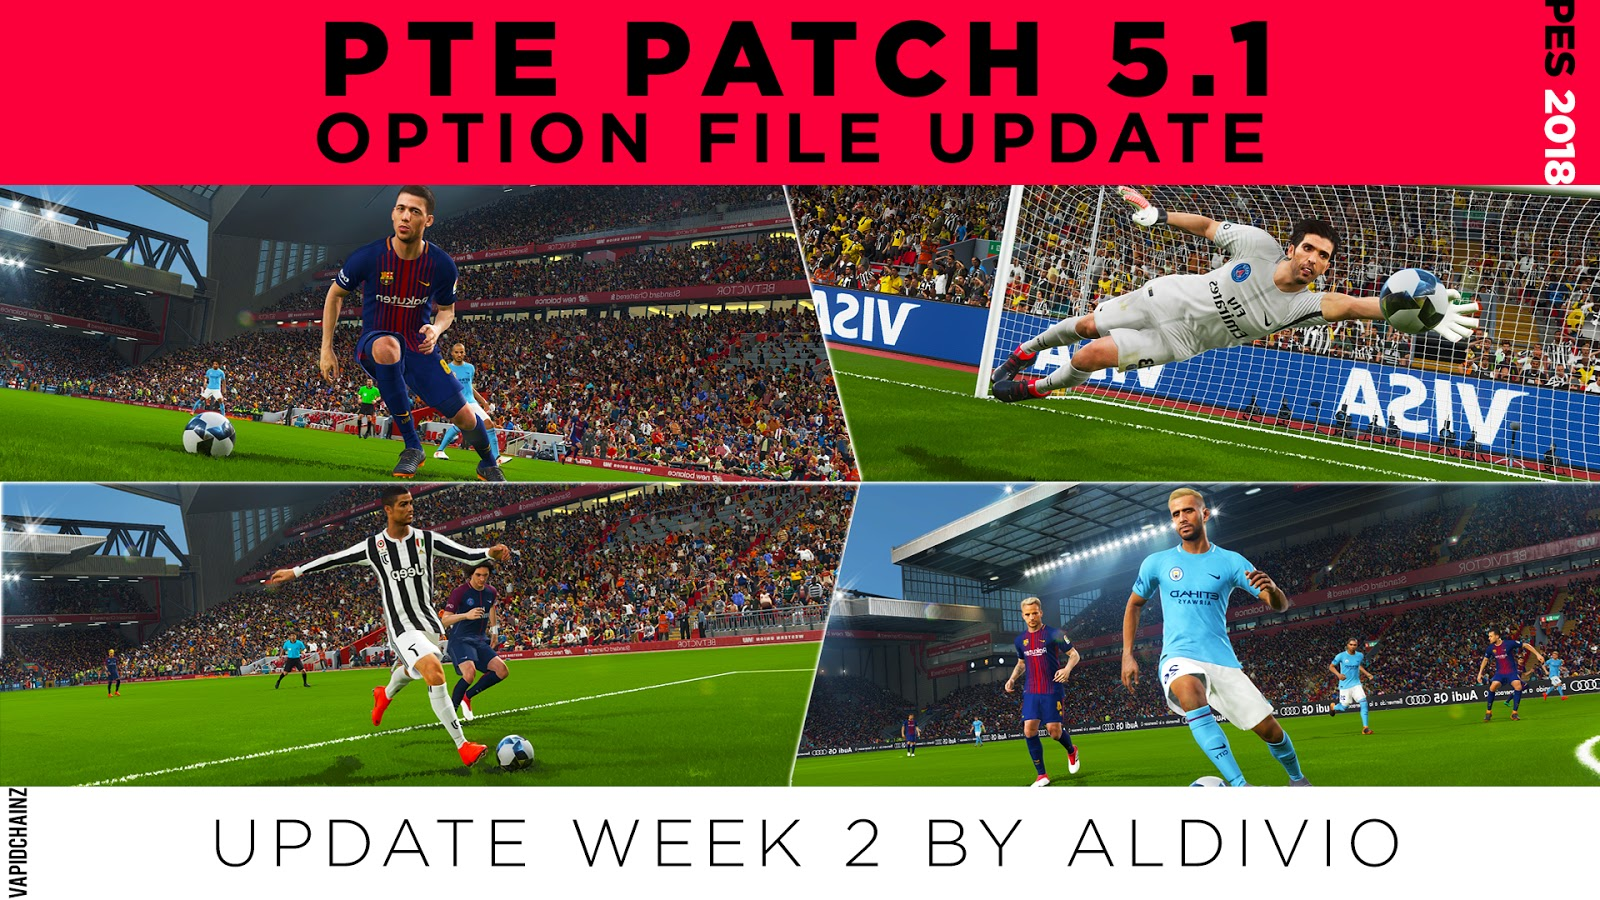 PES 2018 PTE PATCH 5.1 OF UPDATE WEEK 2 BY ALDIVIO